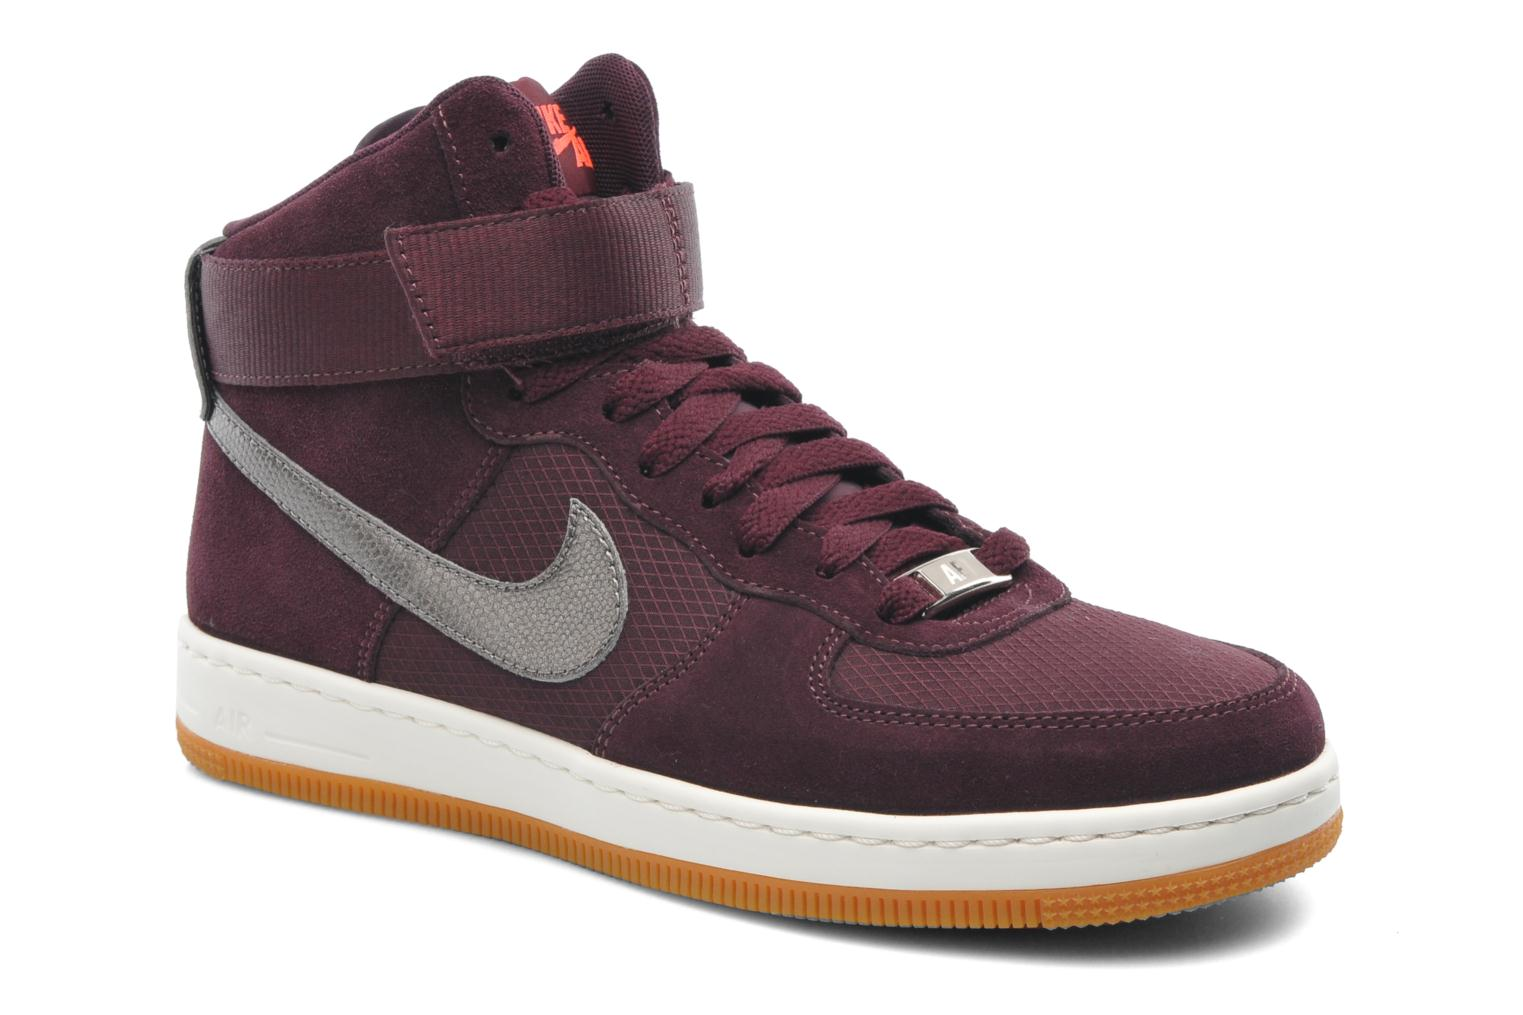 promo code 29f1a ee680 ... norway baskets nike w nike air force 1 ultra force mid bordeaux vue  détail paire 85104